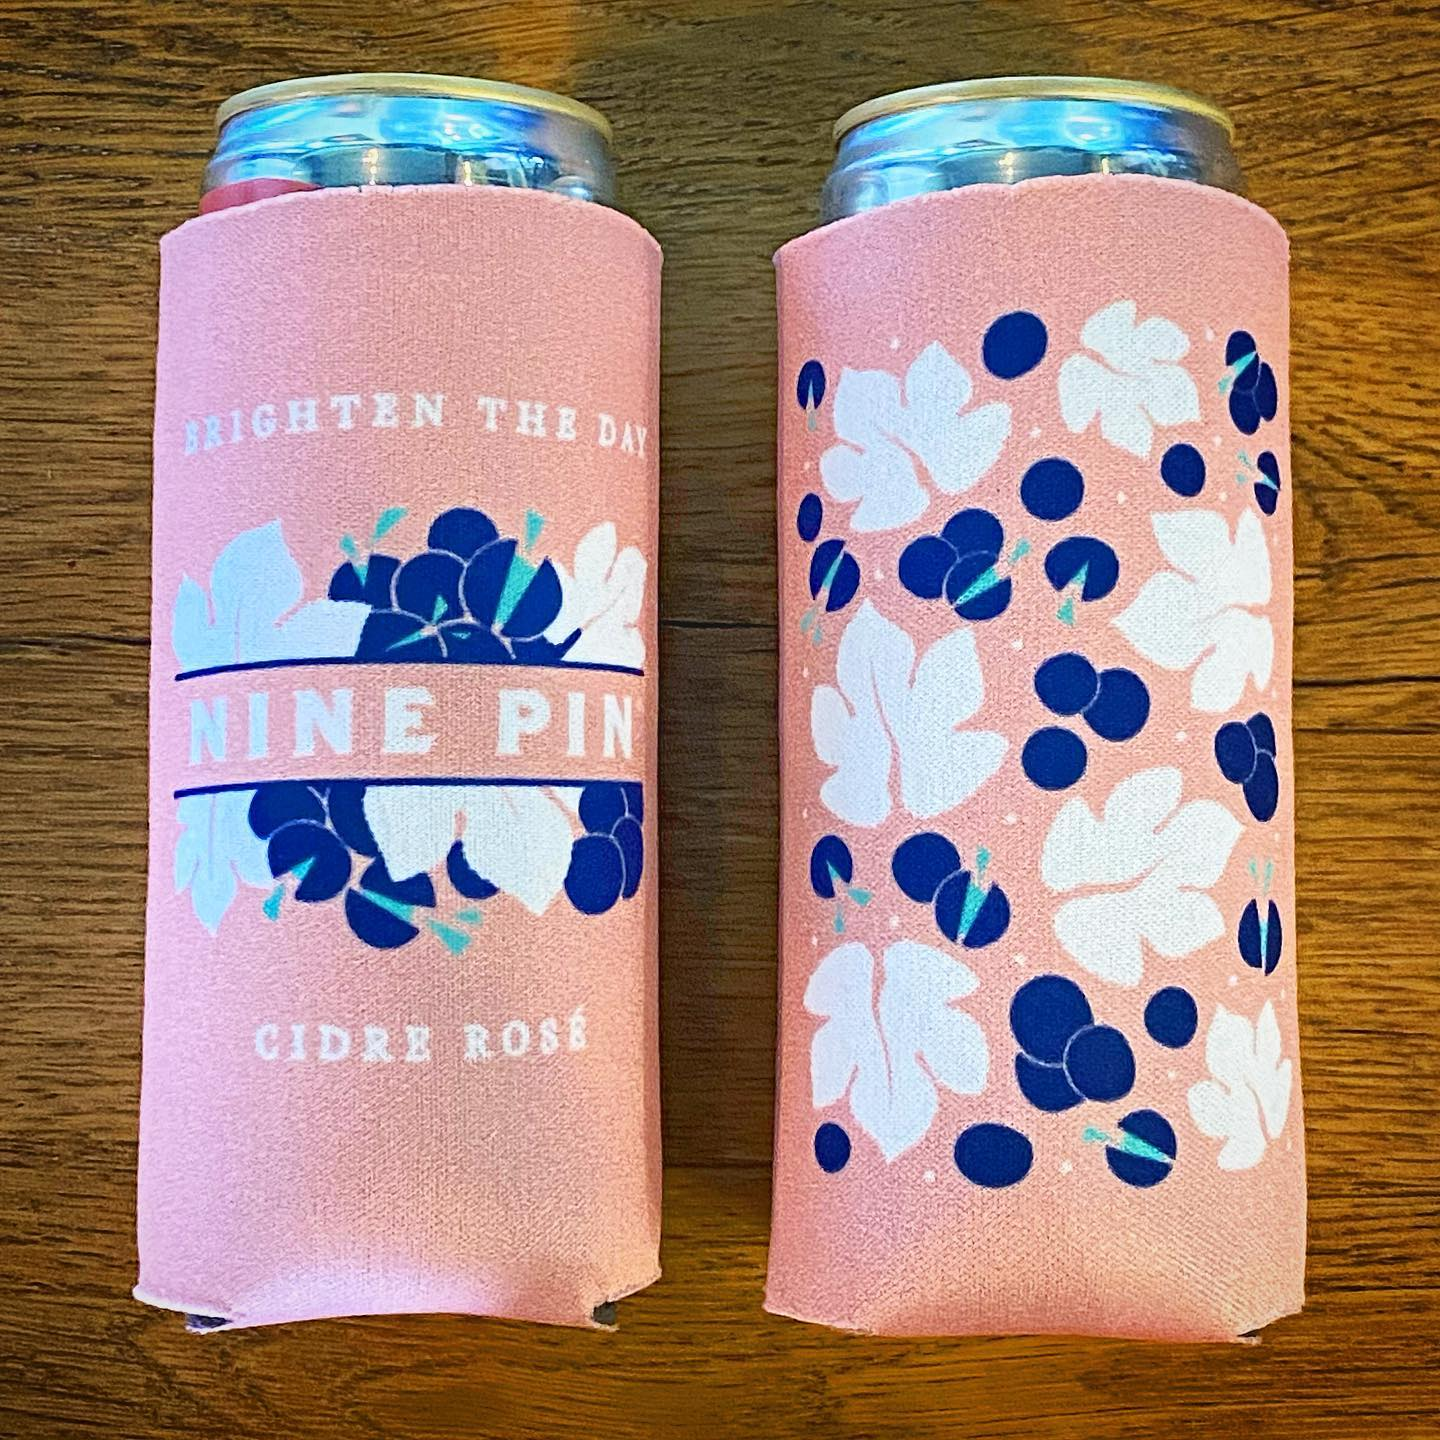 """Two Blue, white and pink Nine Pin Cidre Rosé can koozies. Text reads """"Brighten the Day"""""""